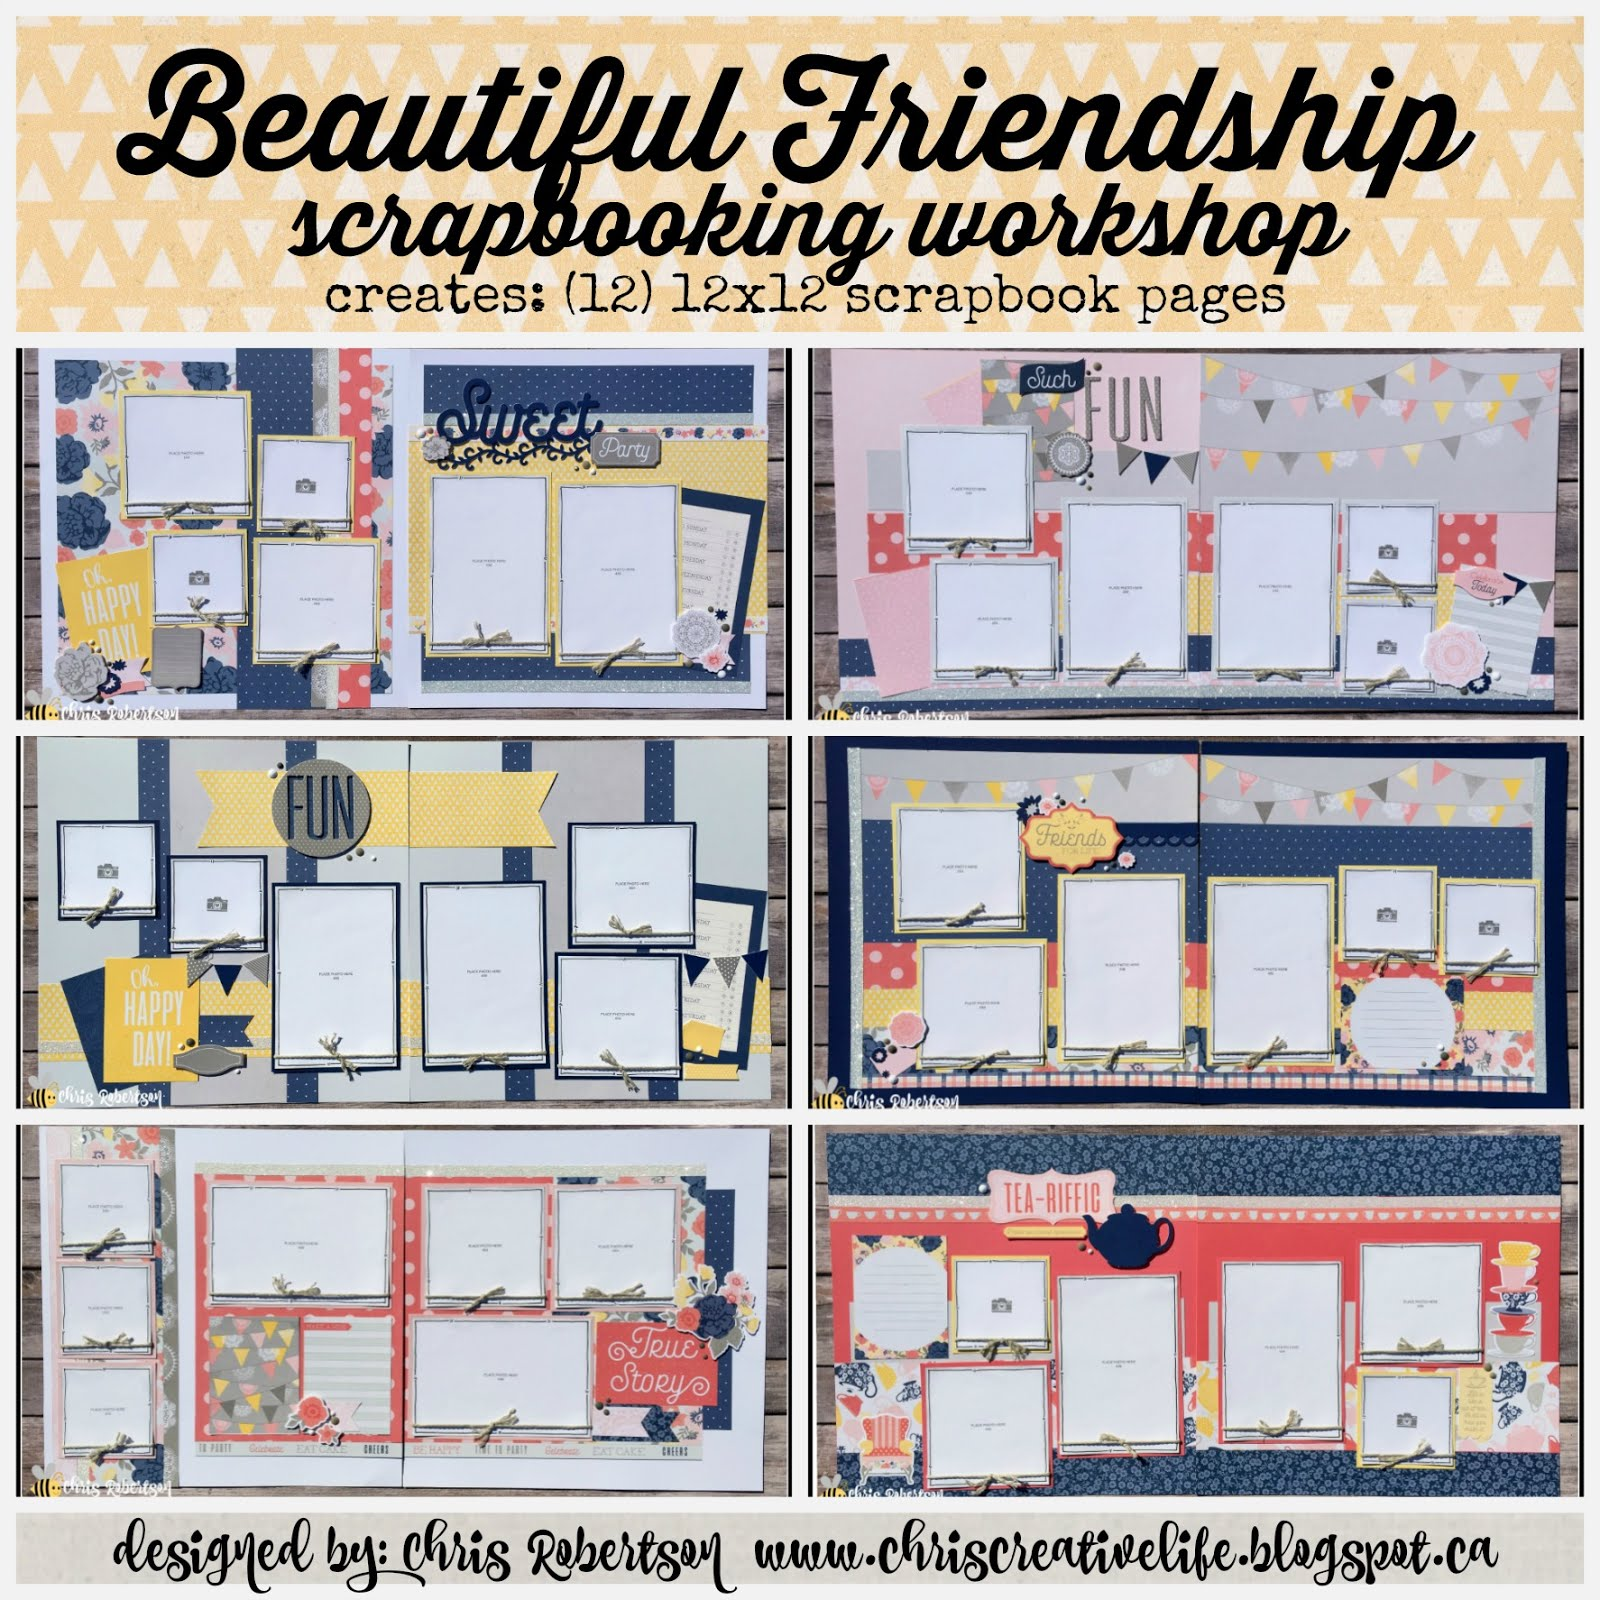 Beautiful Friendship Scrapbooking Workshop